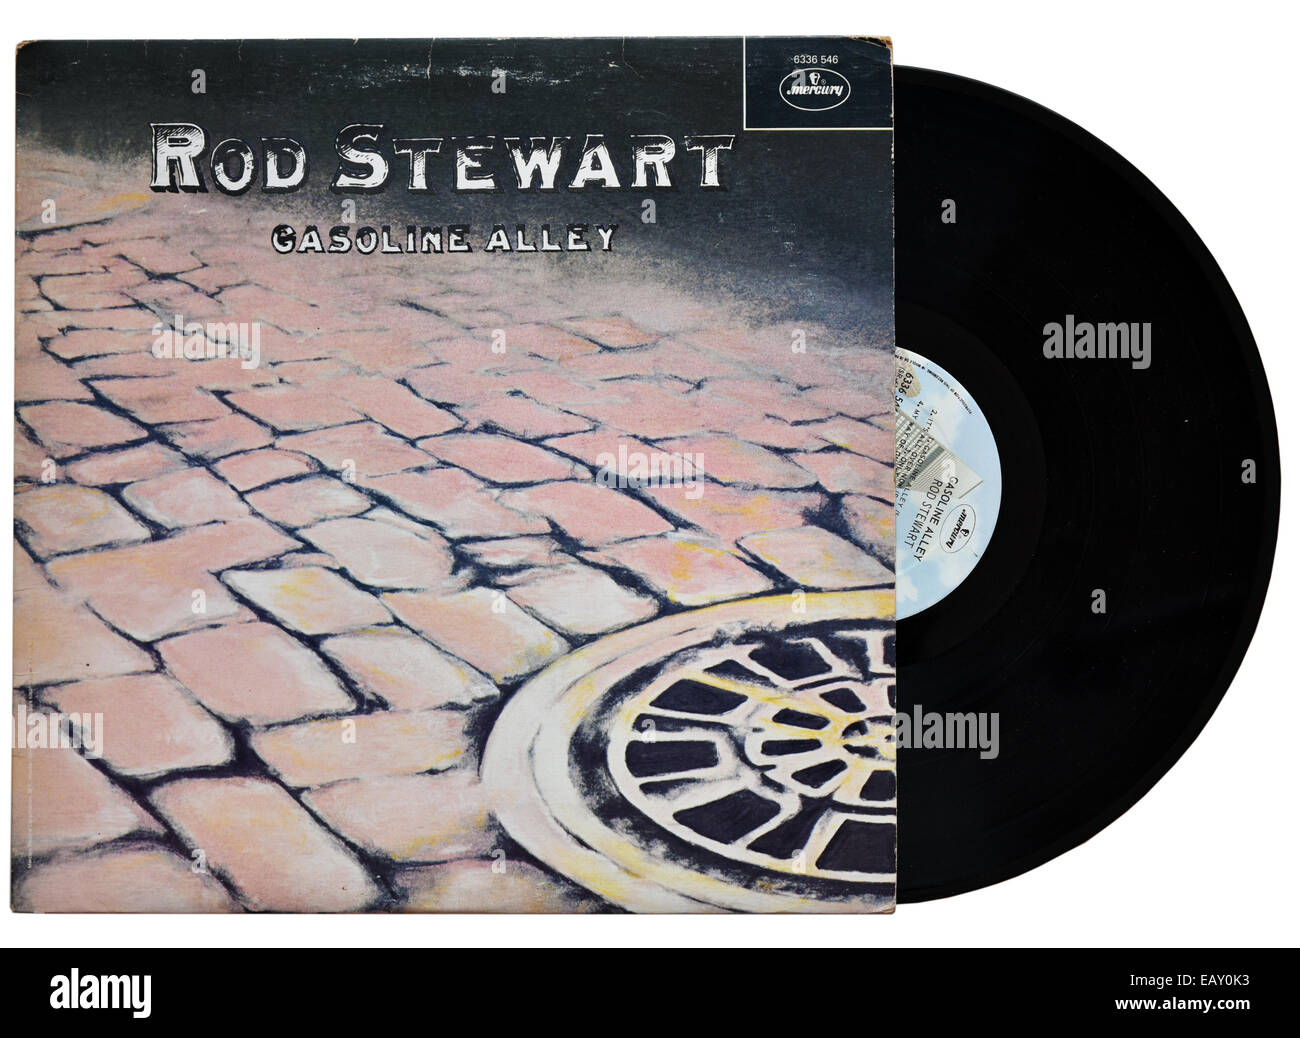 Rod Stewart Gasoline Alley album - Stock Image